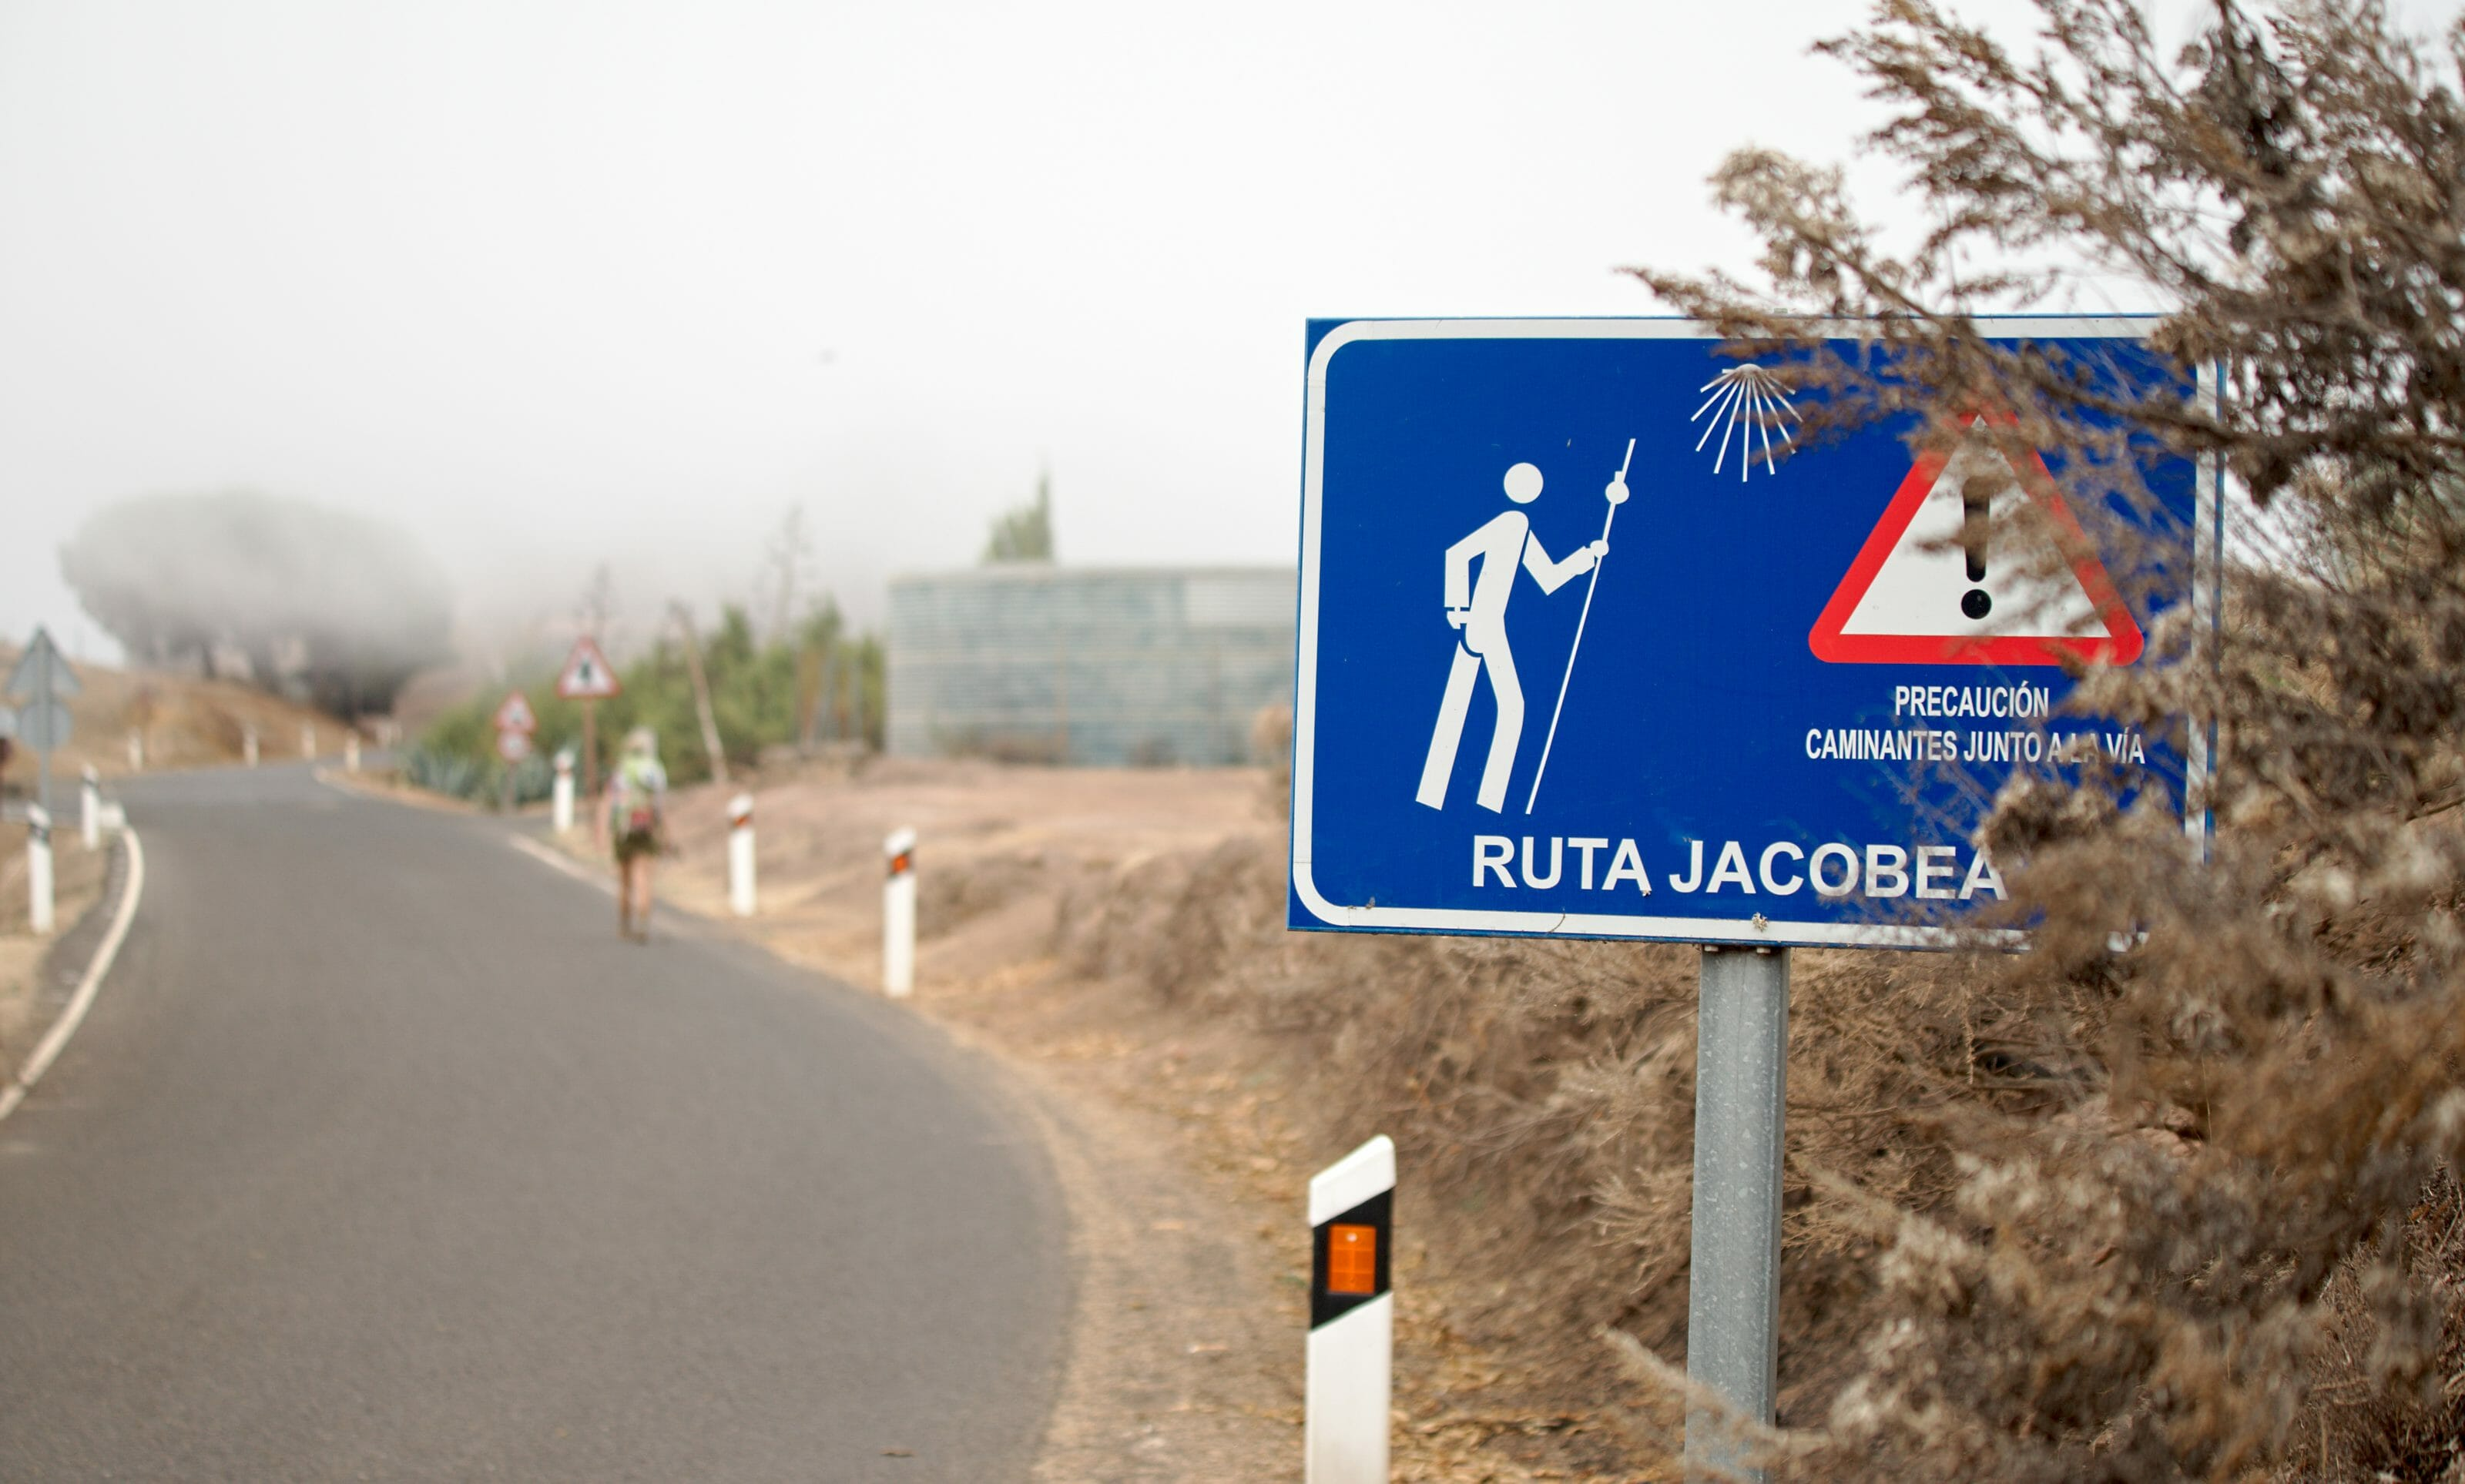 St james route gran canaria